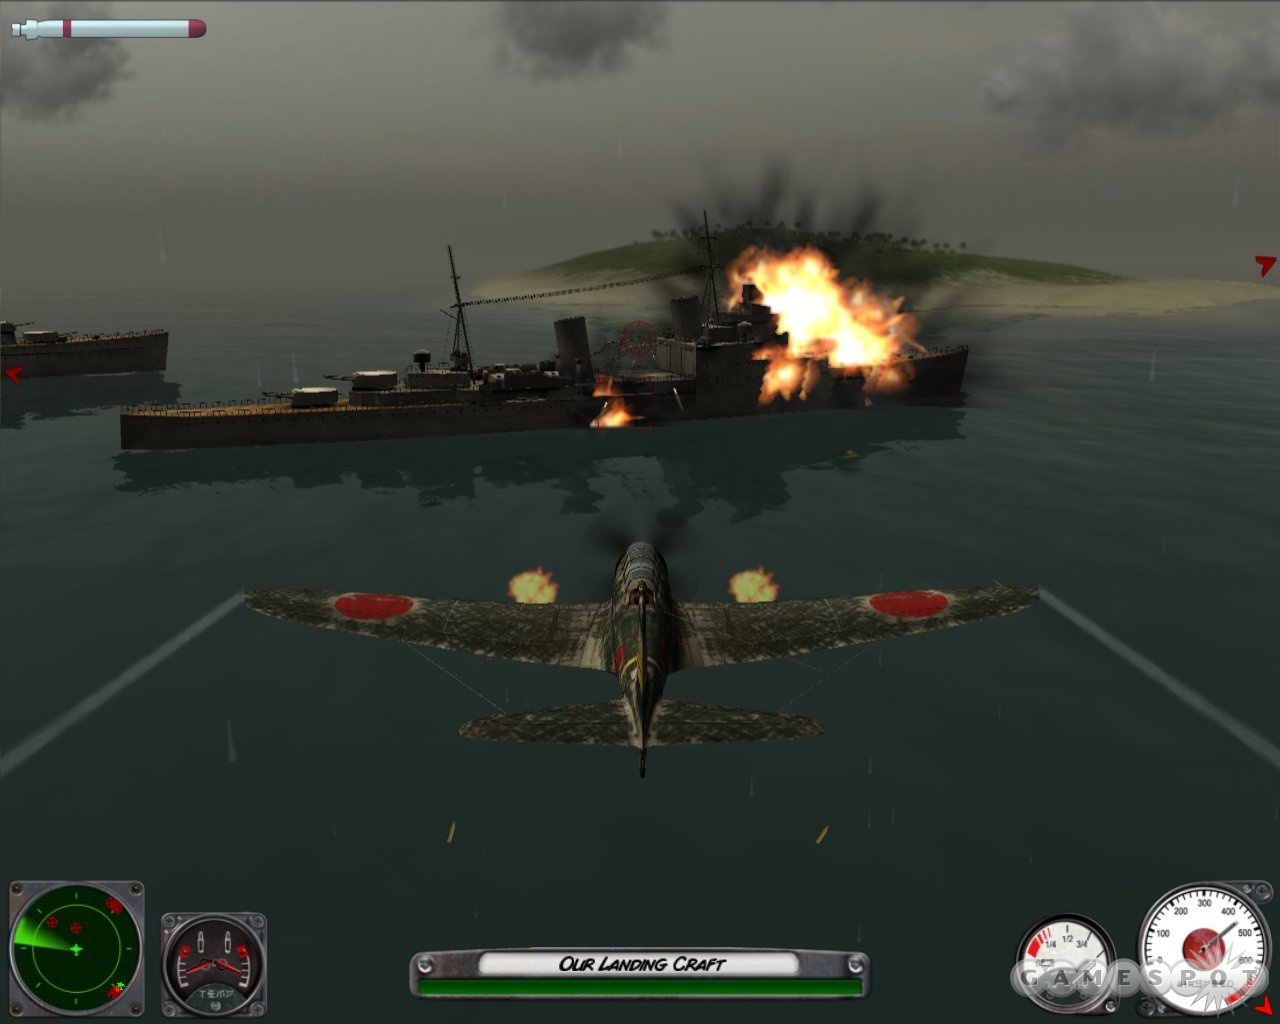 attack on pearl harbor game free download